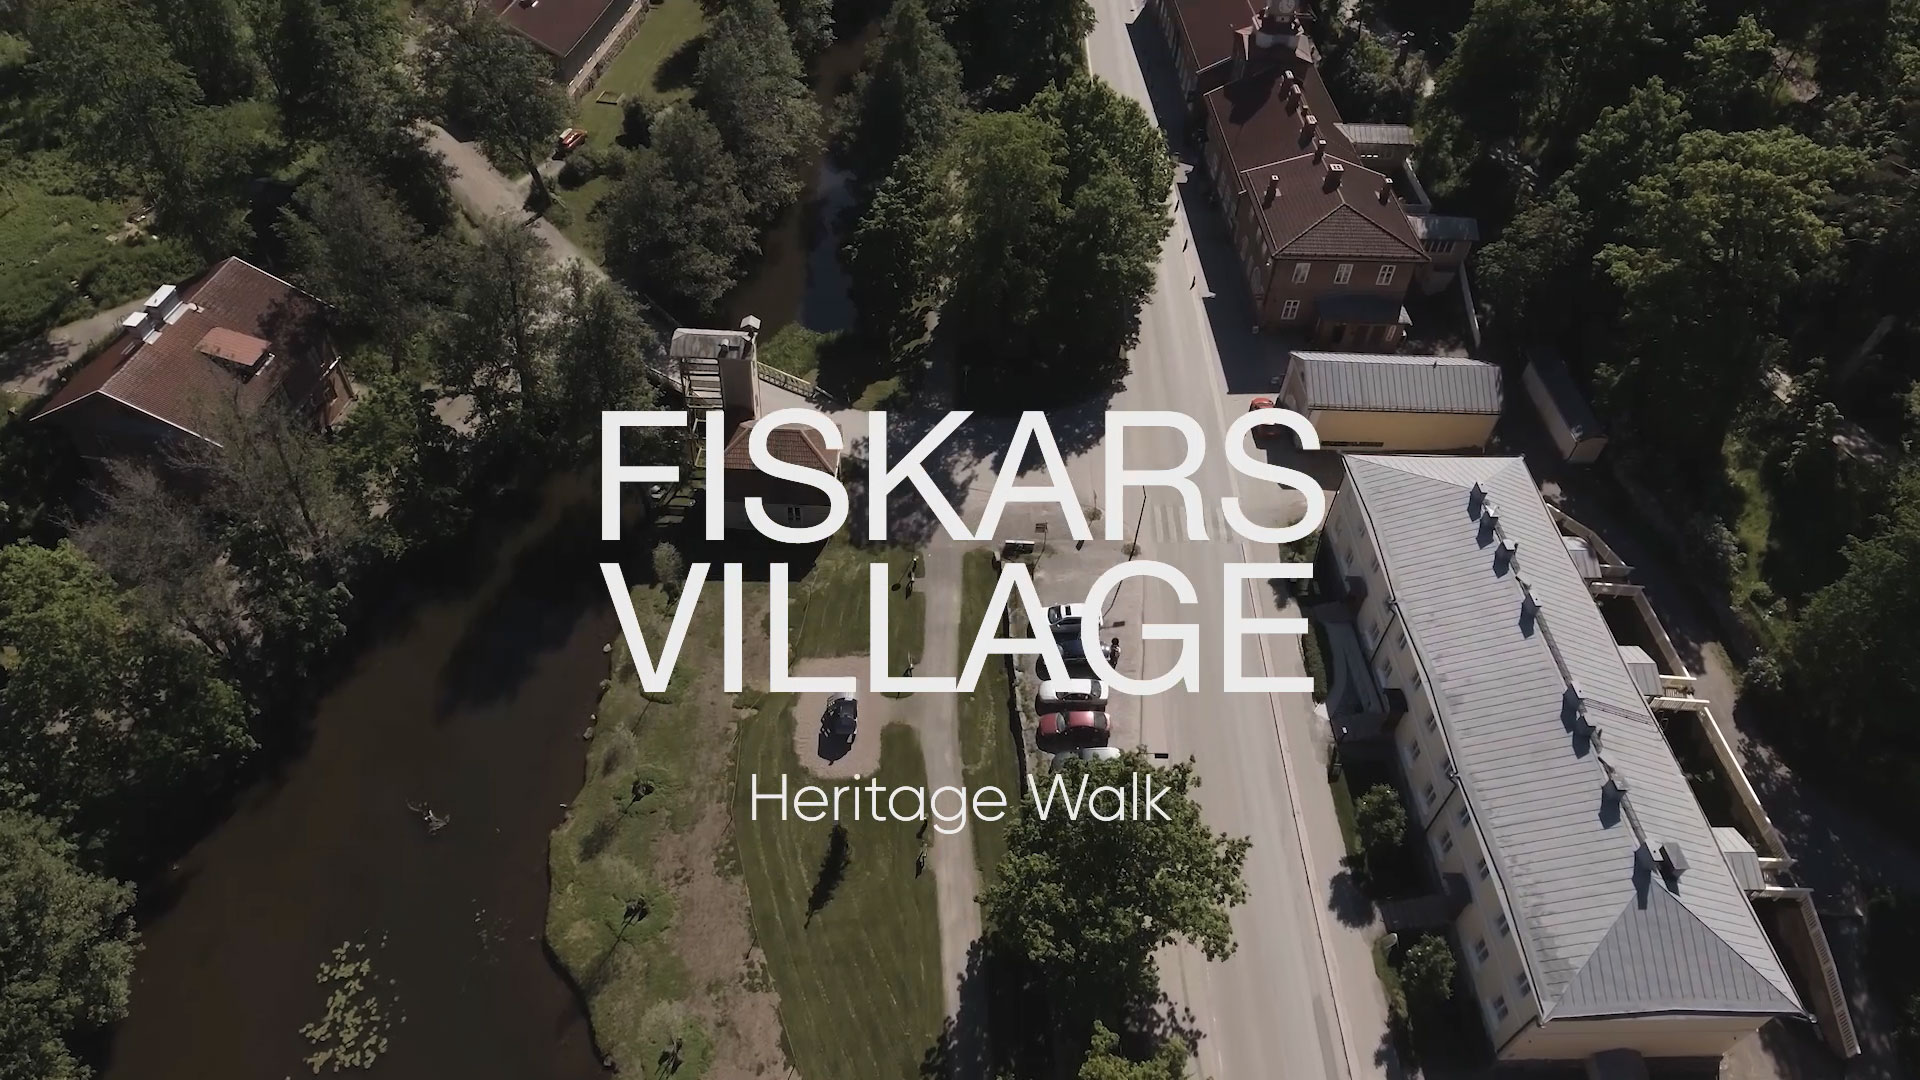 Fiskars Village's history brought into today with AR